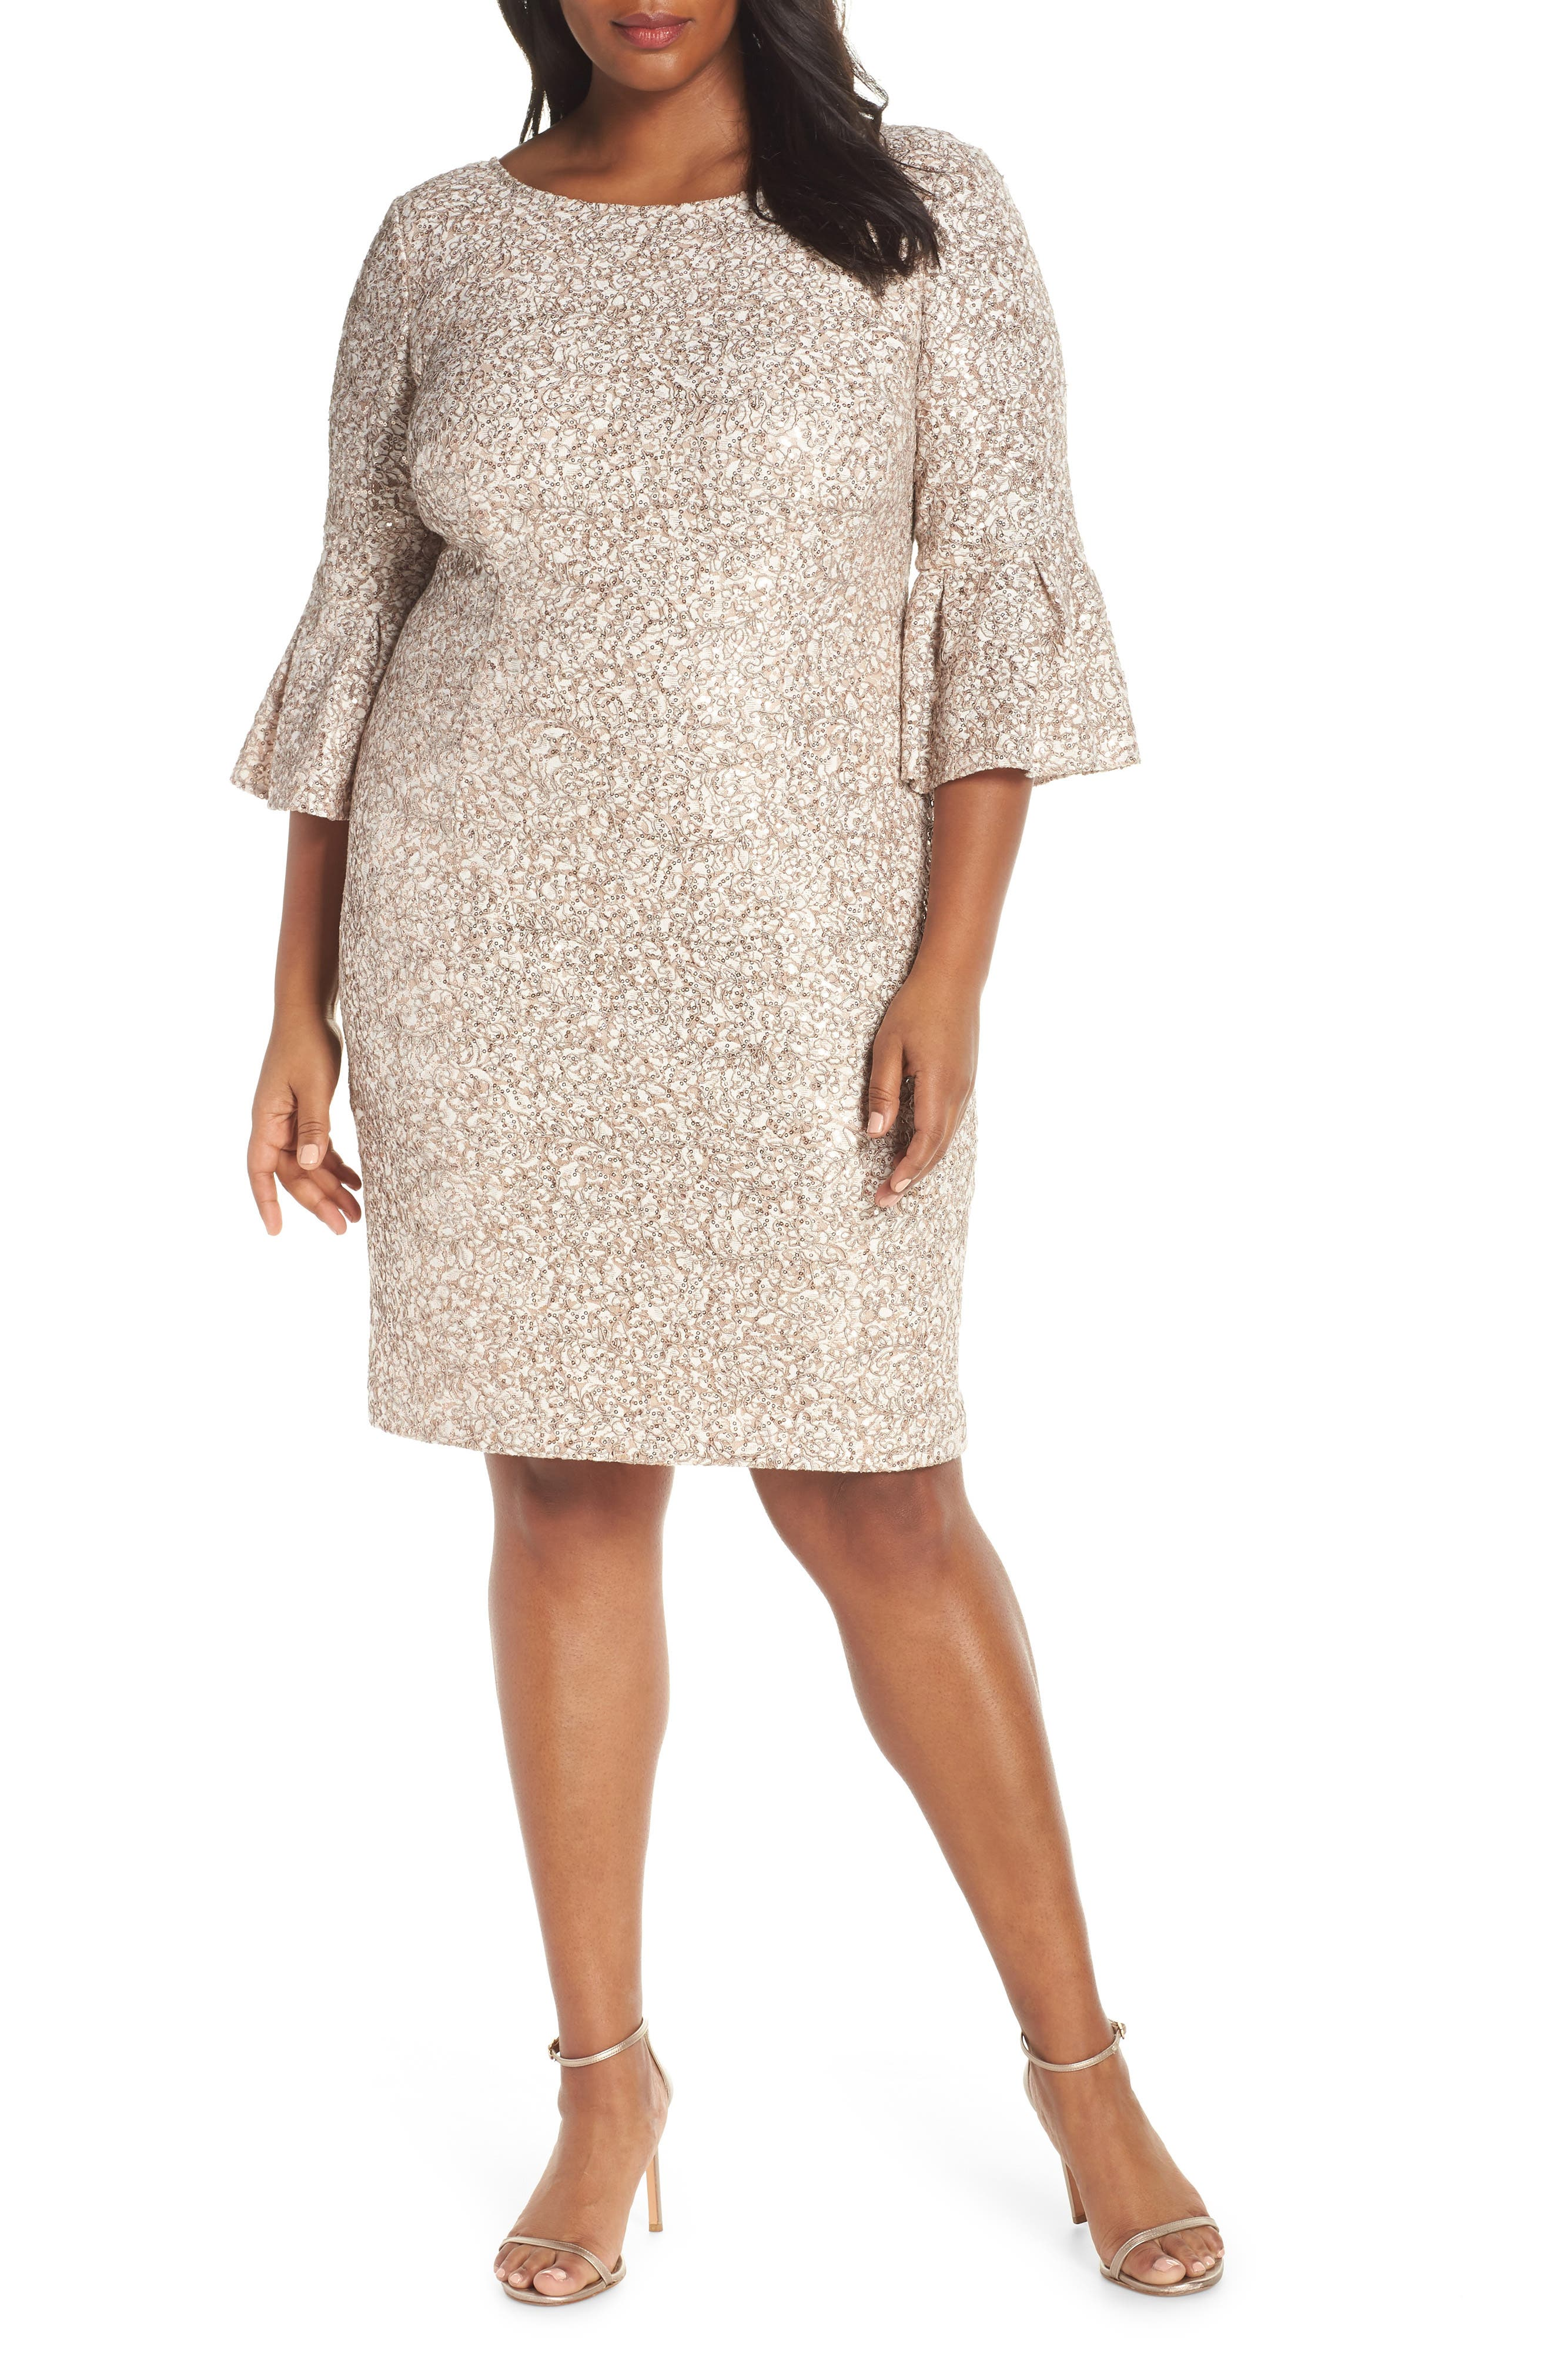 Embroidered Lace Shift Dress,                             Main thumbnail 1, color,                             020